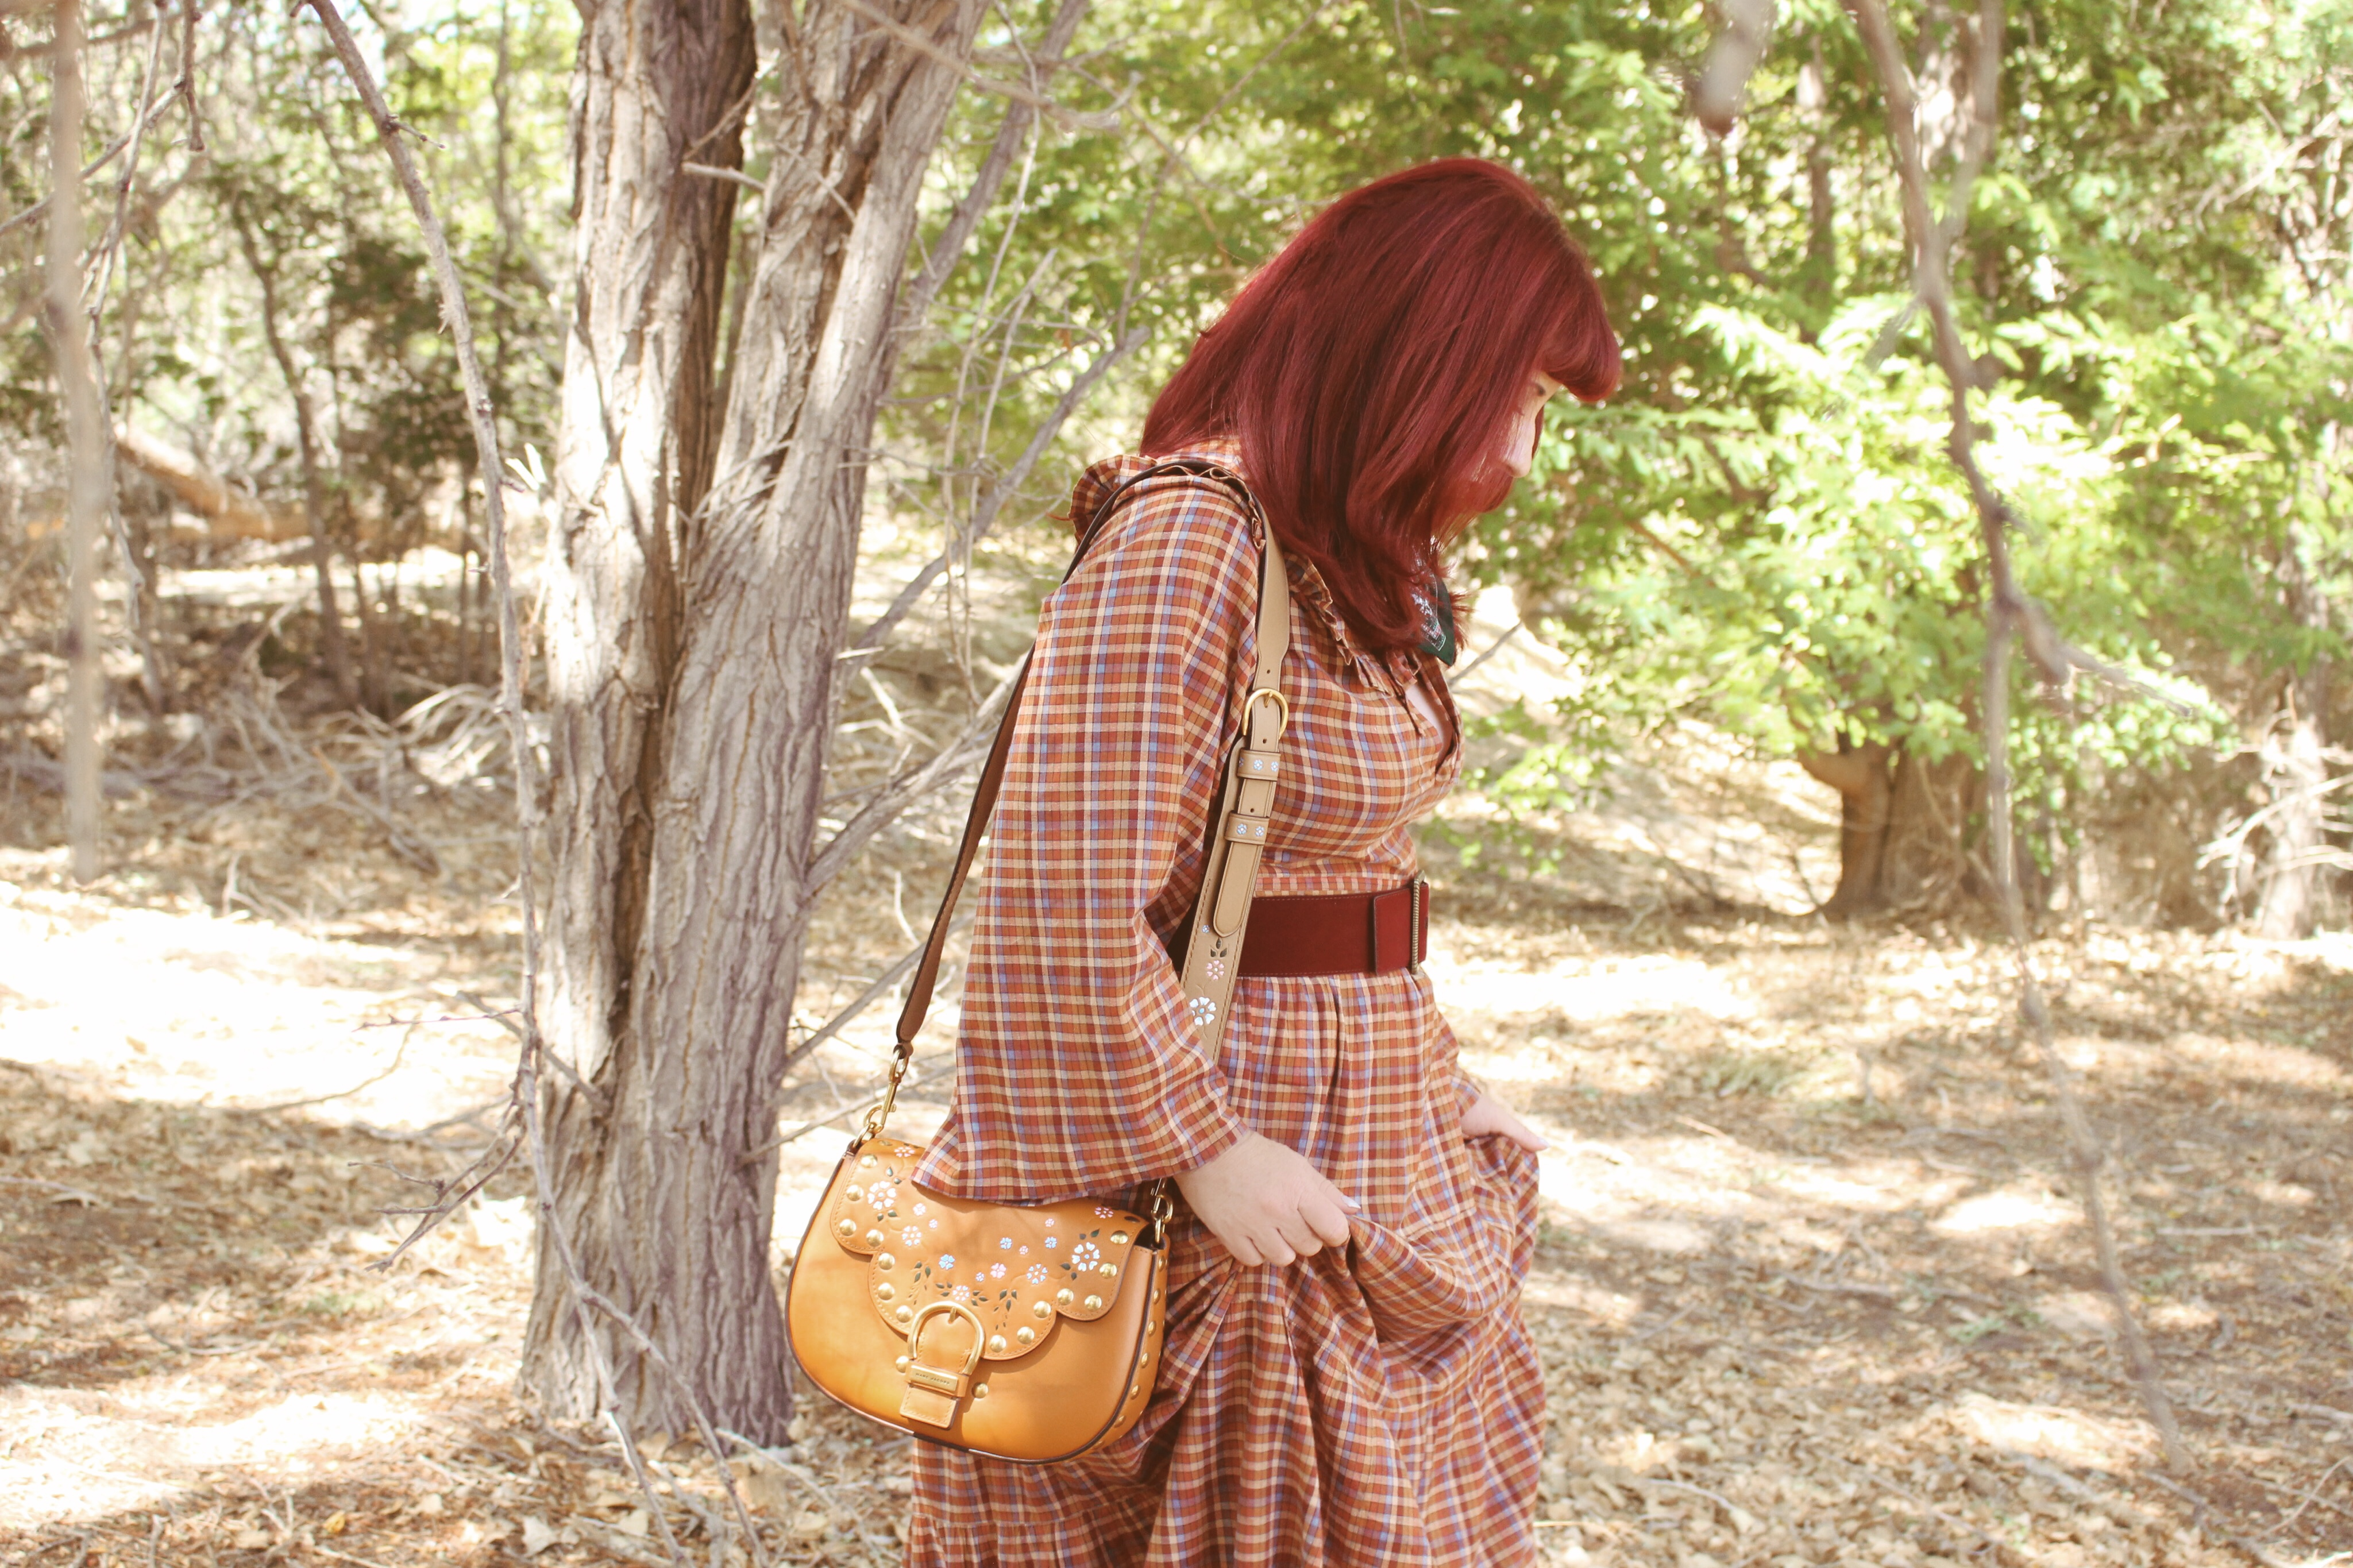 Western and Plaid Fashion Trends